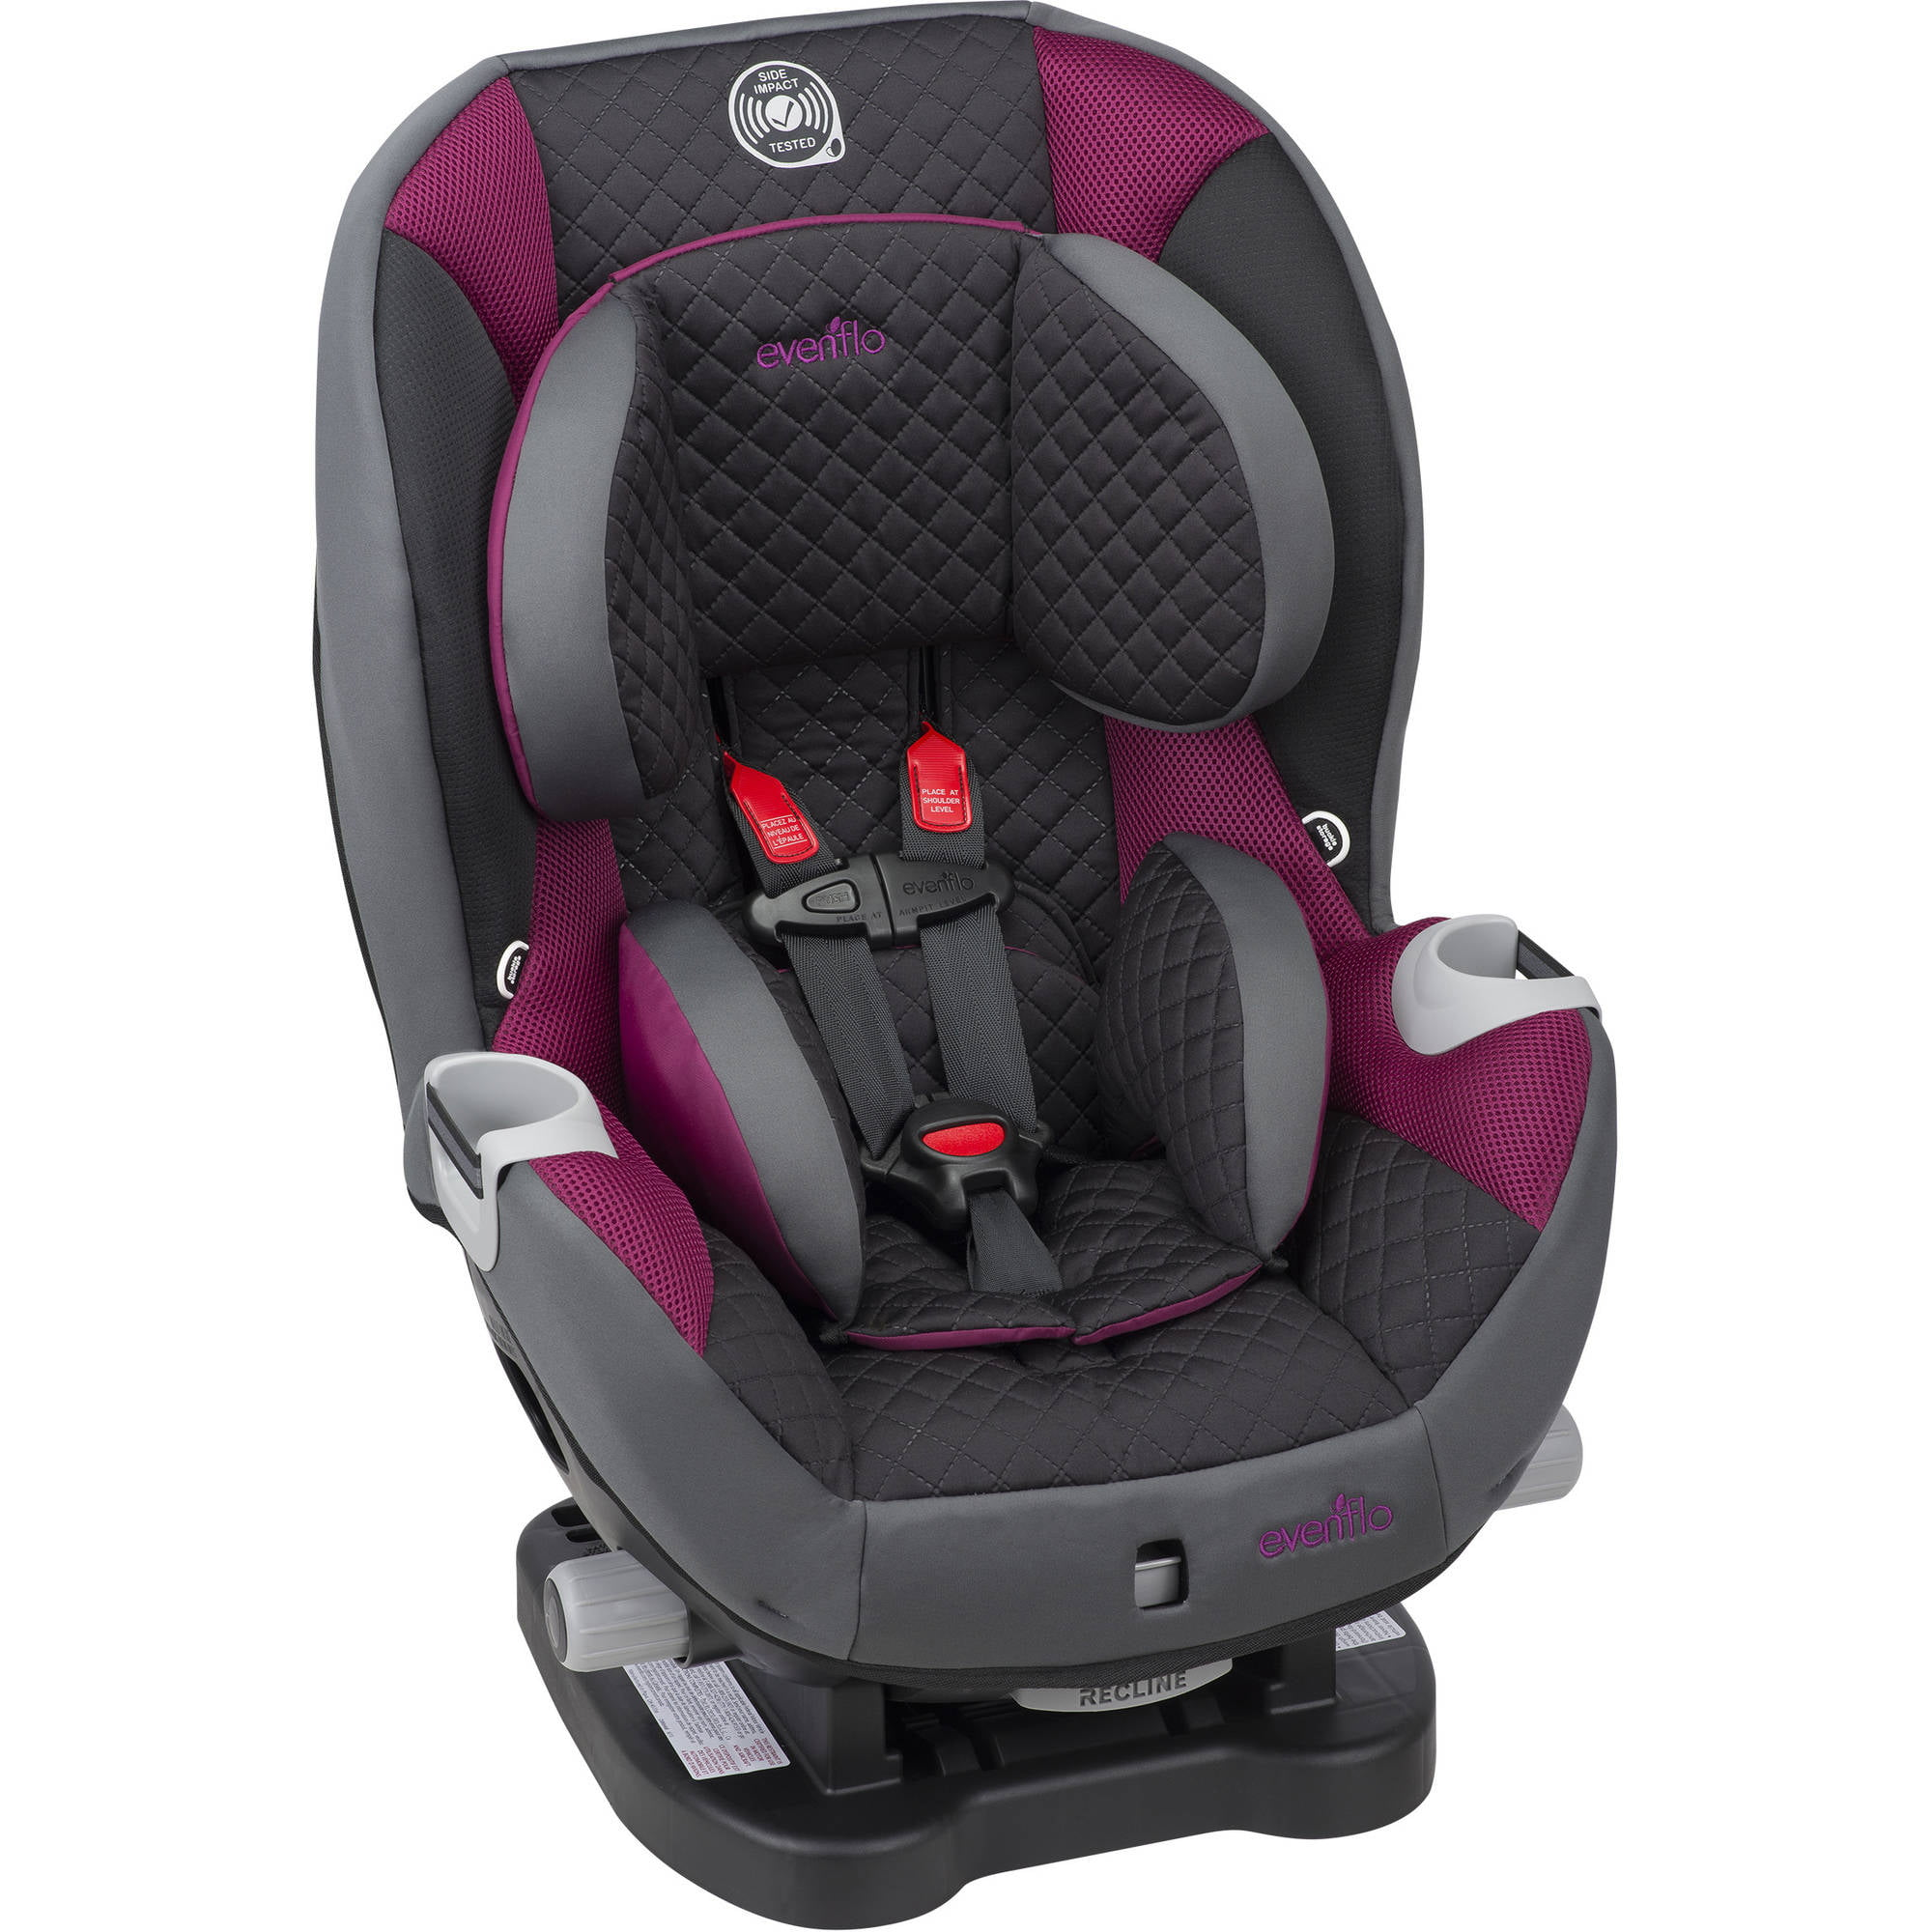 Evenflo Triumph Lx Convertible Car Seat Ratings